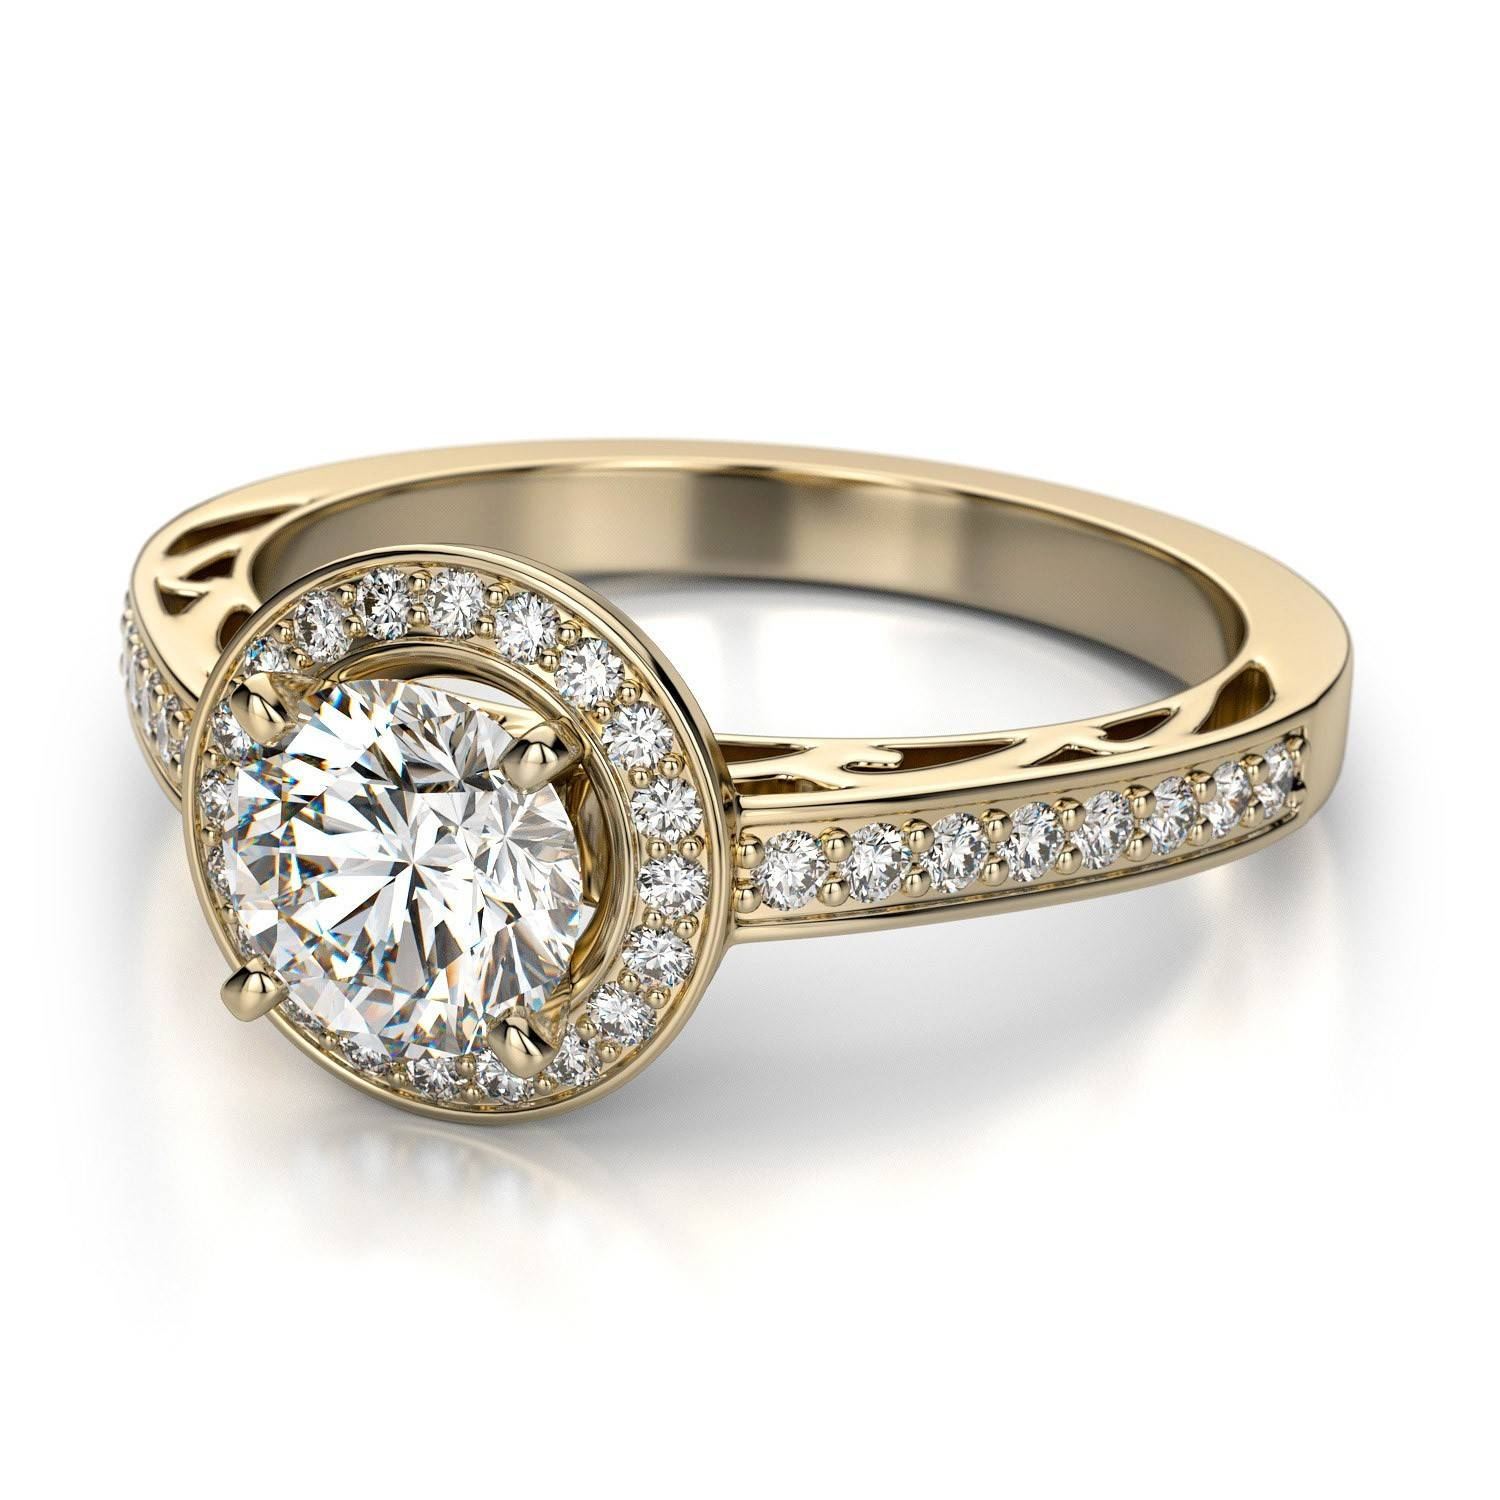 Vintage Gold Diamond Engagement Rings | Wedding, Promise, Diamond For Vintage Halo Engagement Ring Settings (View 11 of 15)